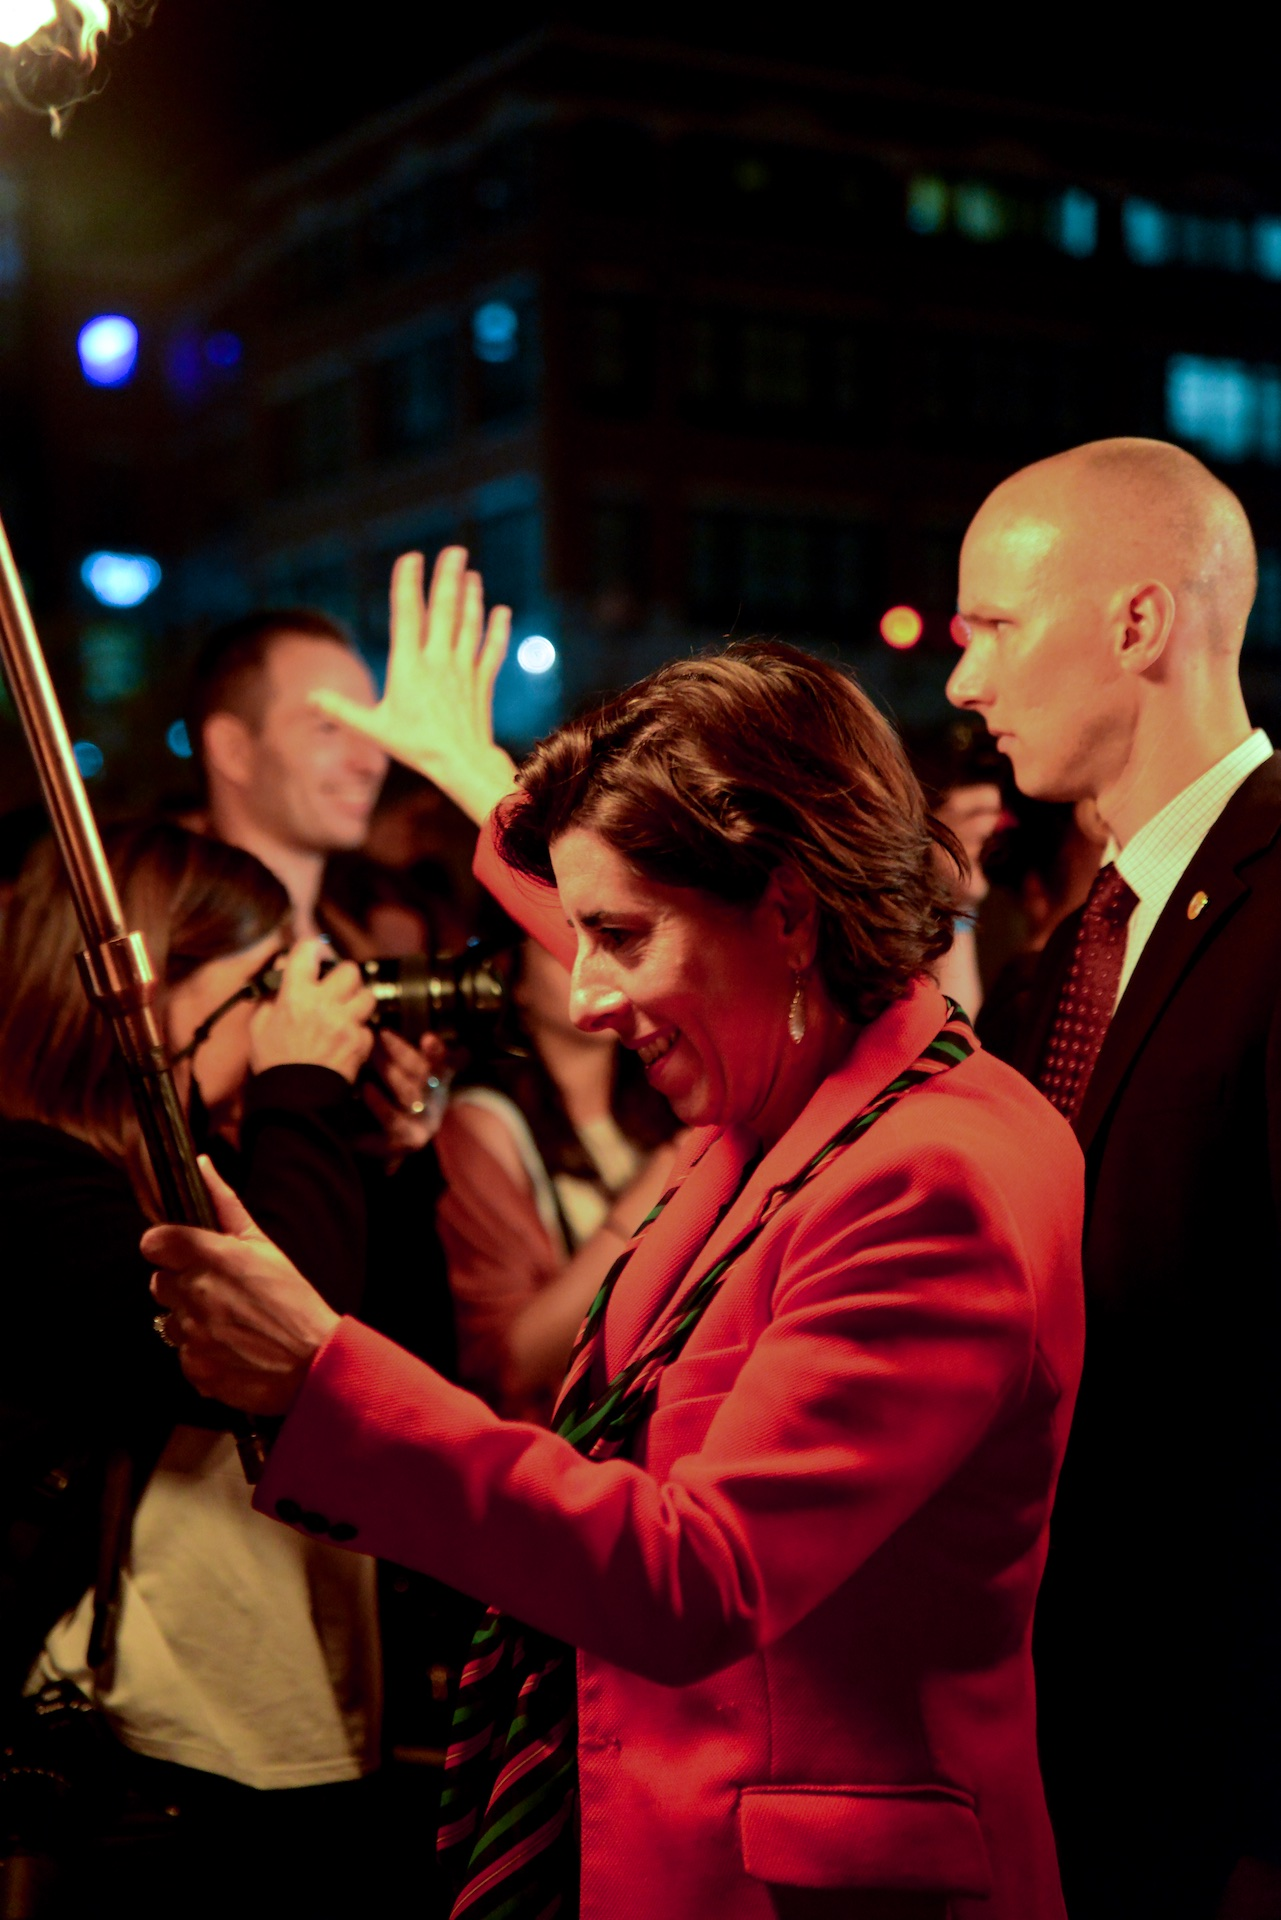 rhode-island-governor-gina-raimondo-helping-lead-the-way-to-the-alex-and-ani-city-center-during-the-